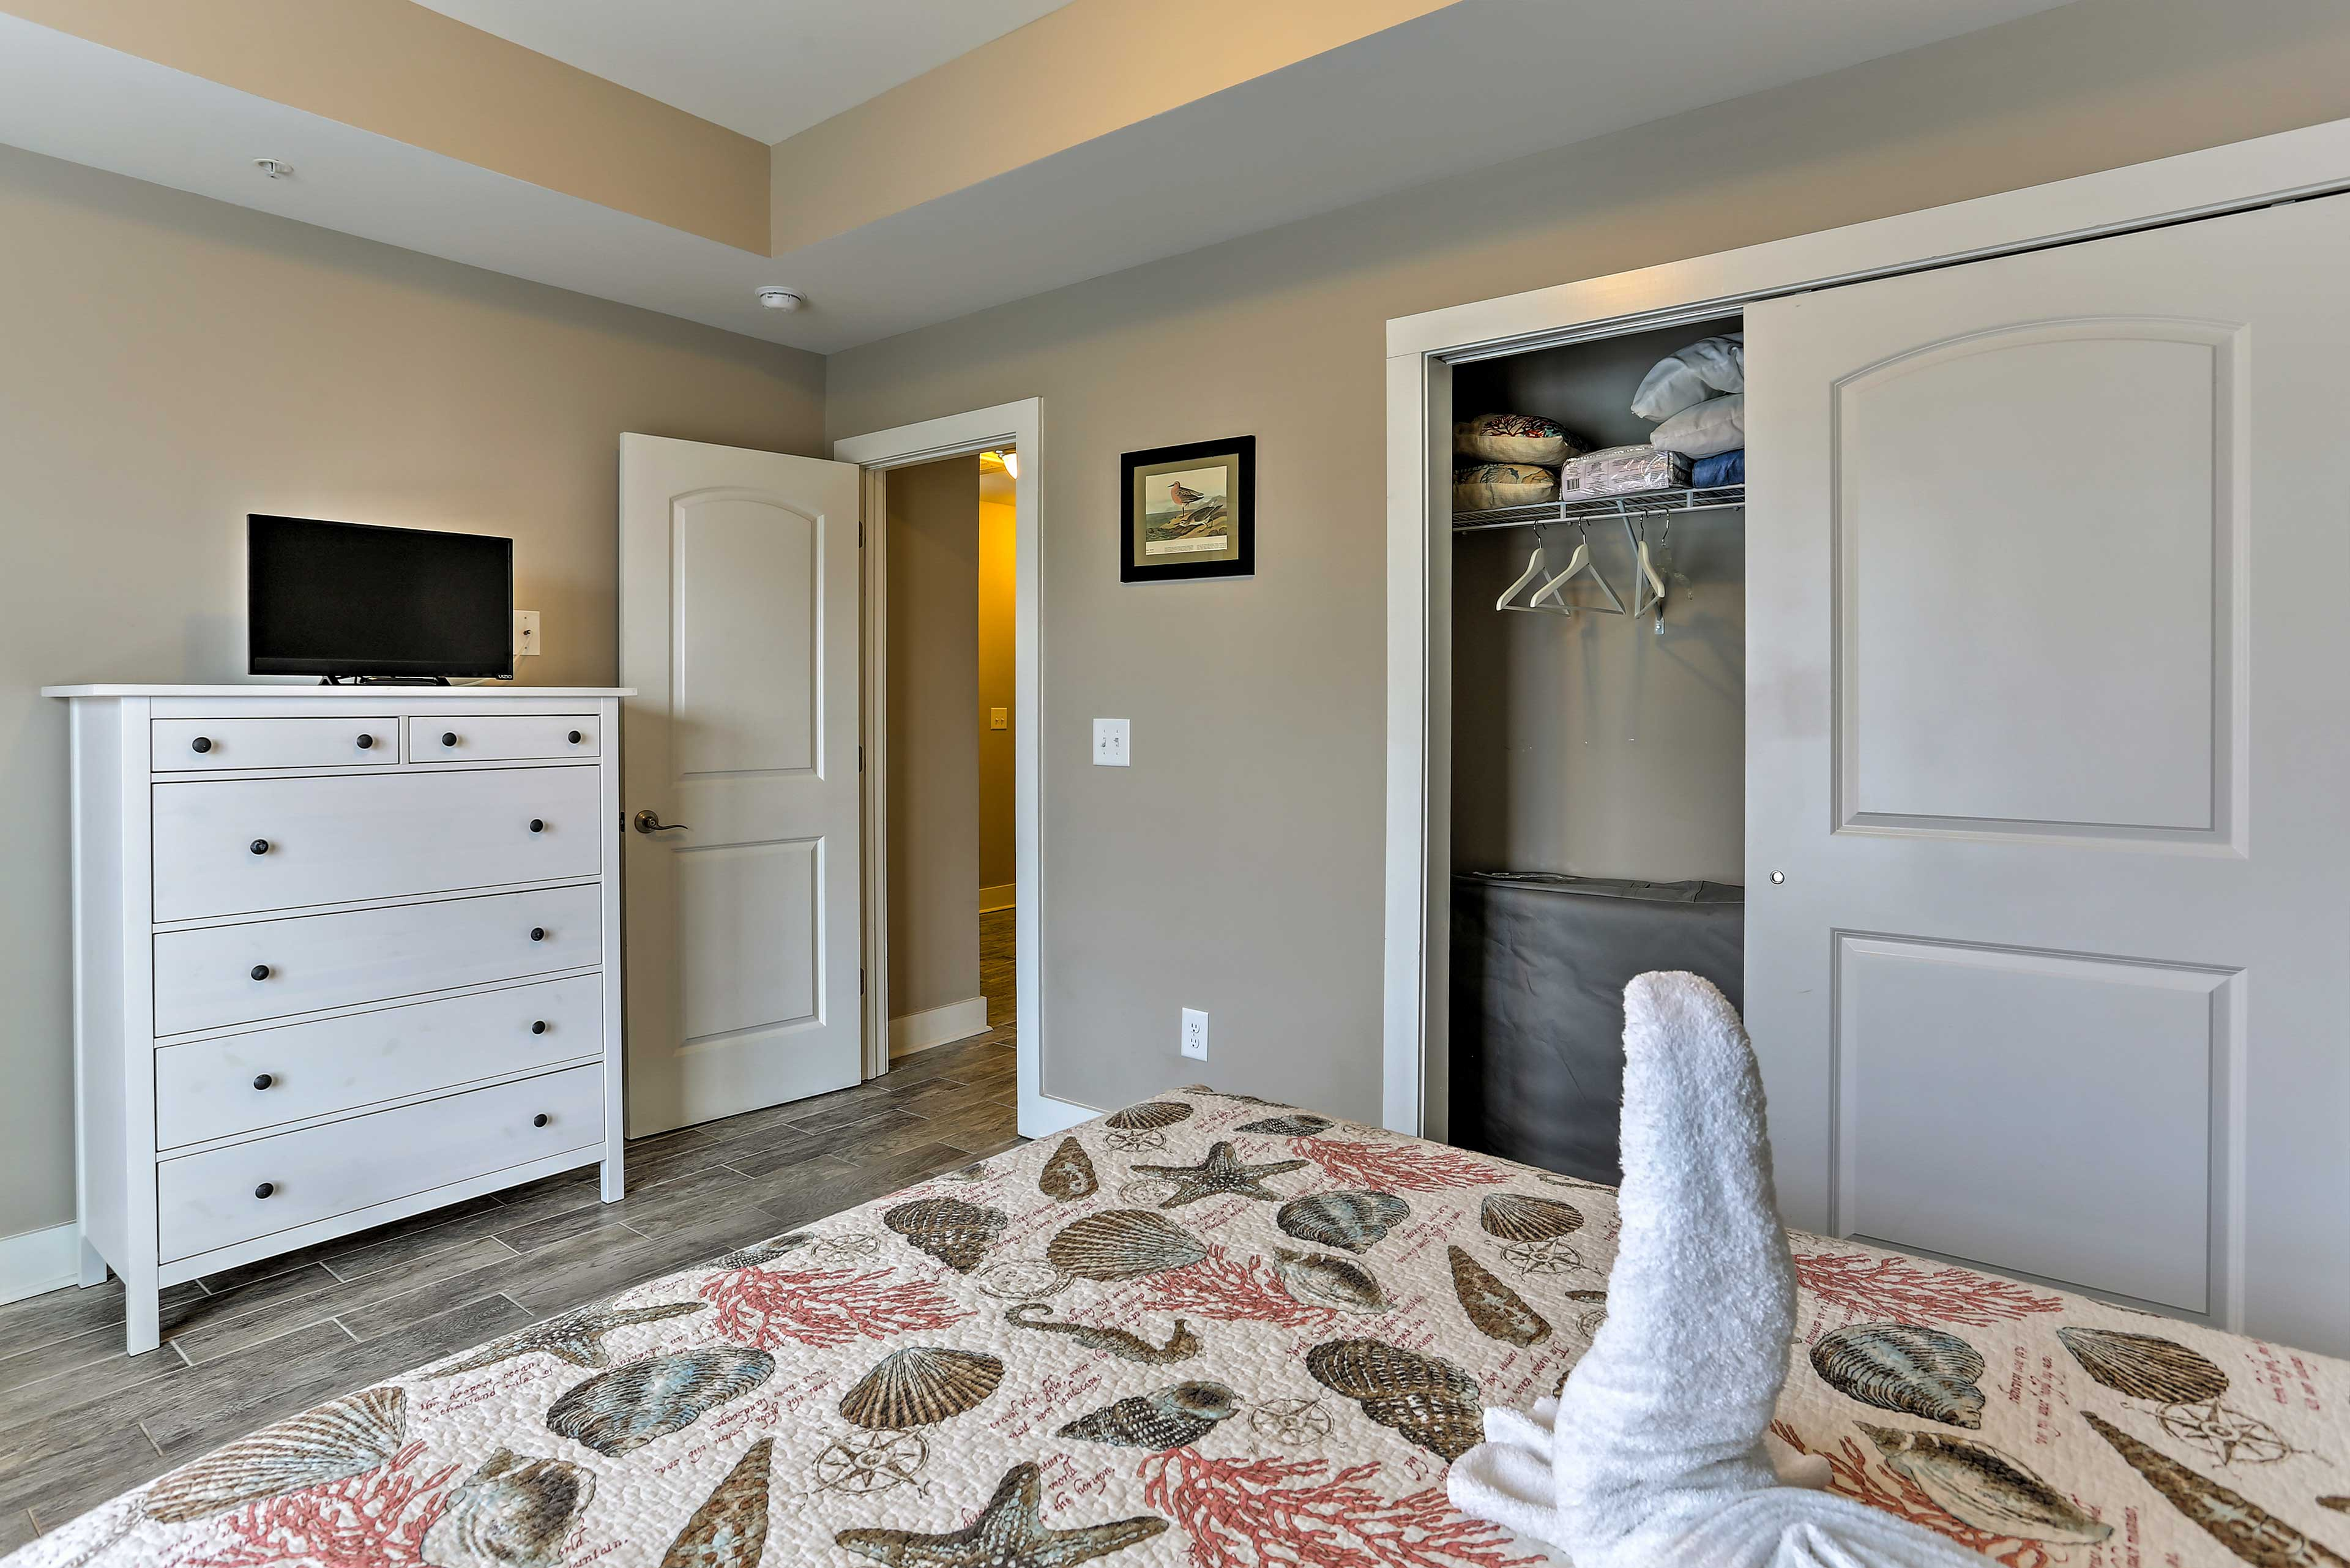 Store your belongings in the dresser or closet during your stay.